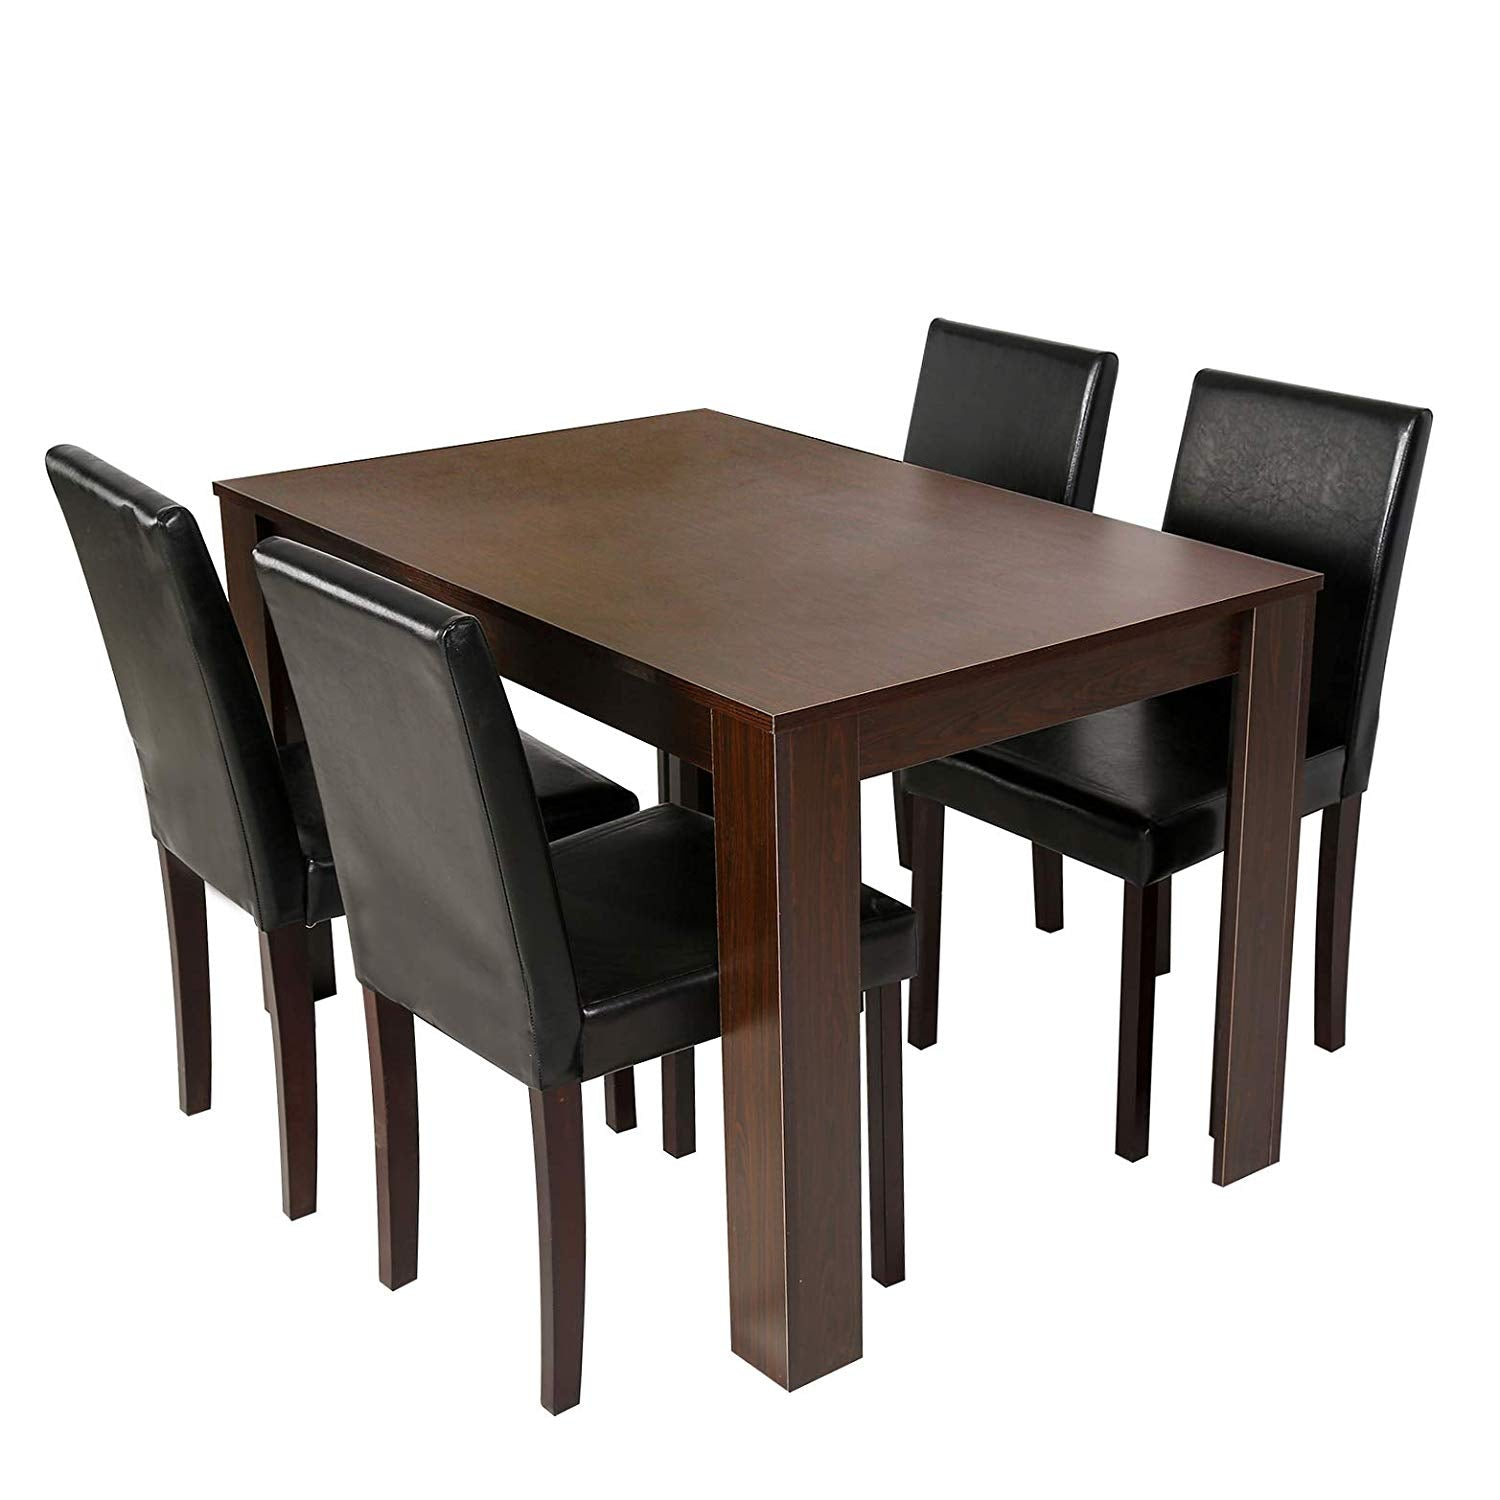 Cherry Tree Furniture 5 Piece Dining Room Set 4 Seater Dining Table With 4 Chairs Walnut Colour Table With Black Pu Leather Seats Shop Designer Home Furnishings